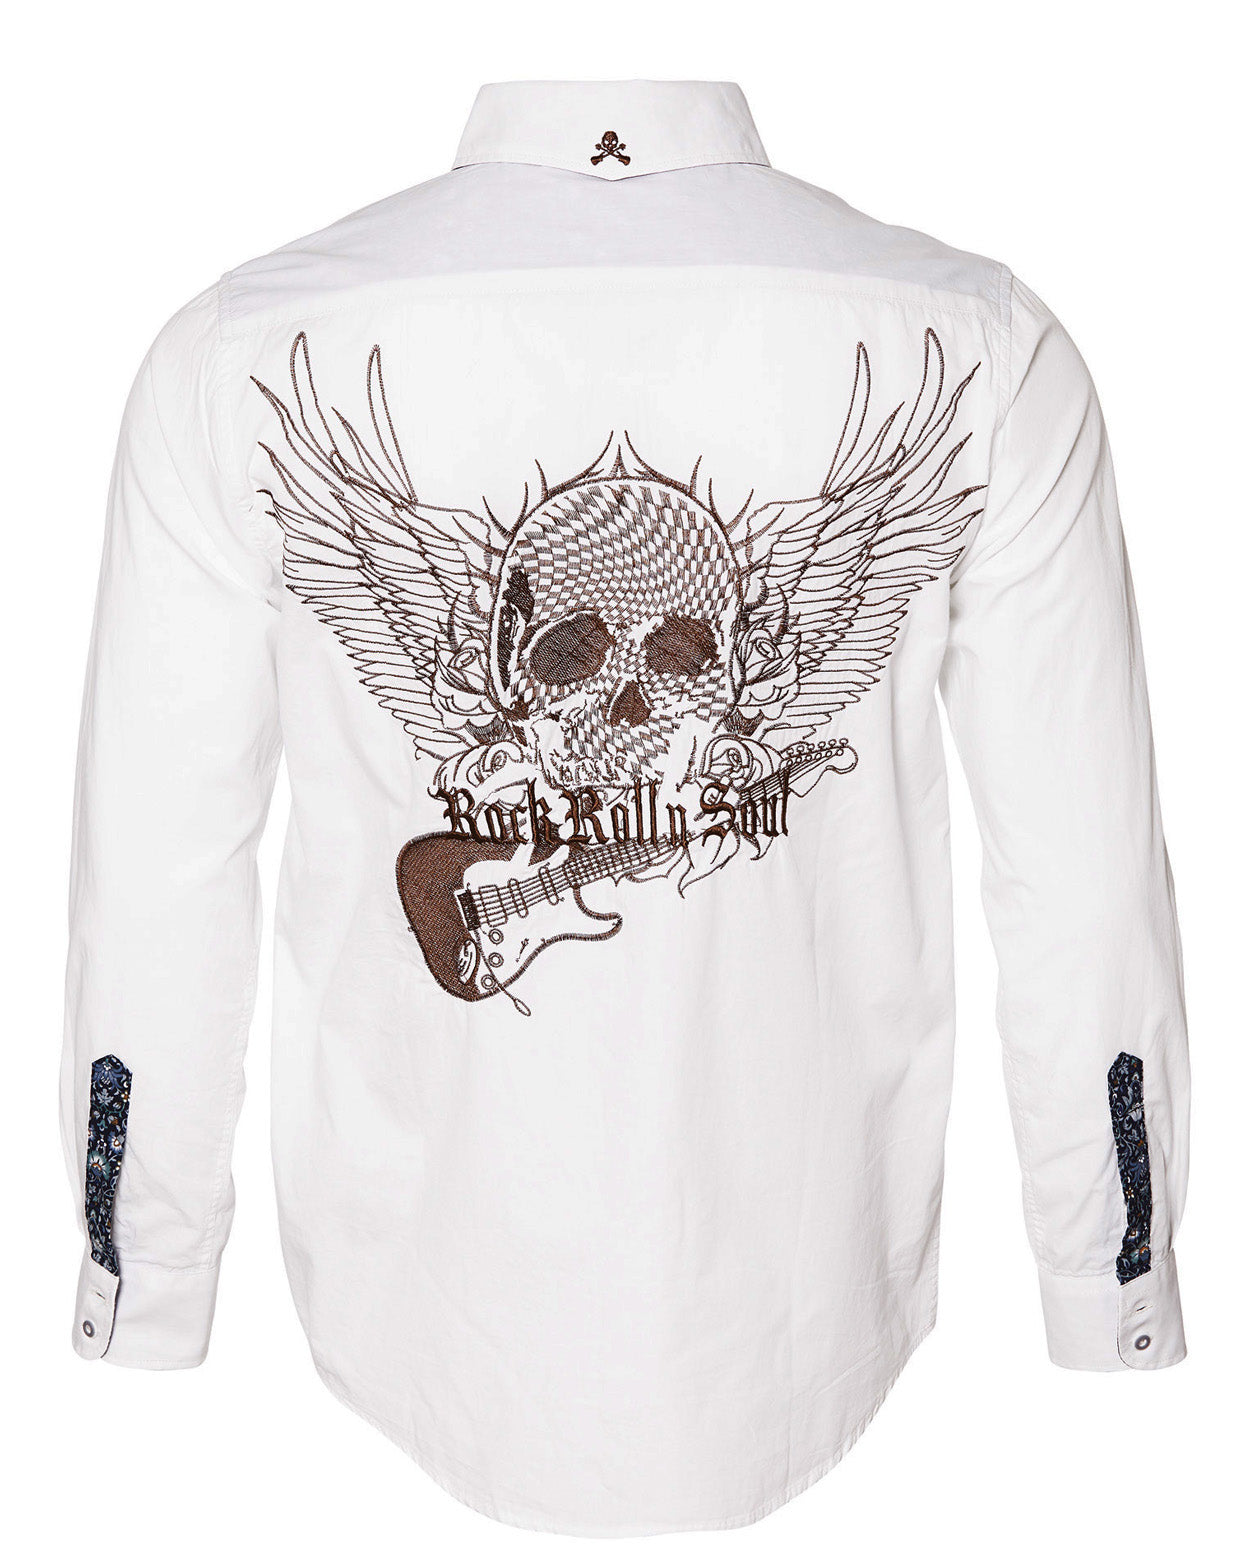 Men's Casual Fashion Button Up Shirt - Flying Skull & Guitar by Rock Roll n Soul